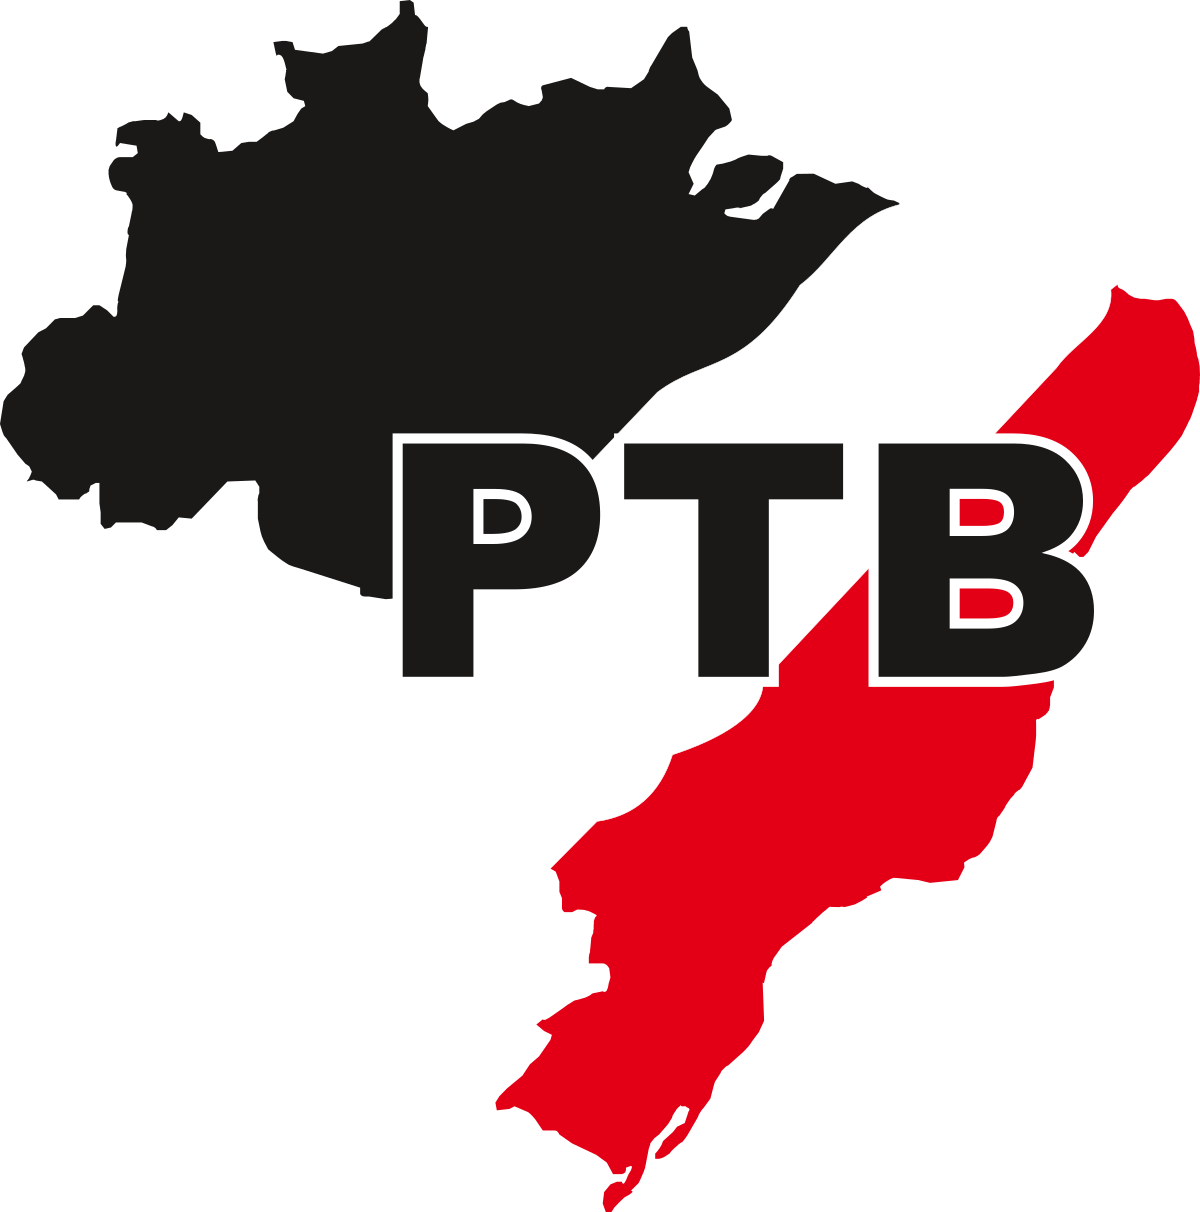 Brazil drawing nationalism. Brazilian labour party current